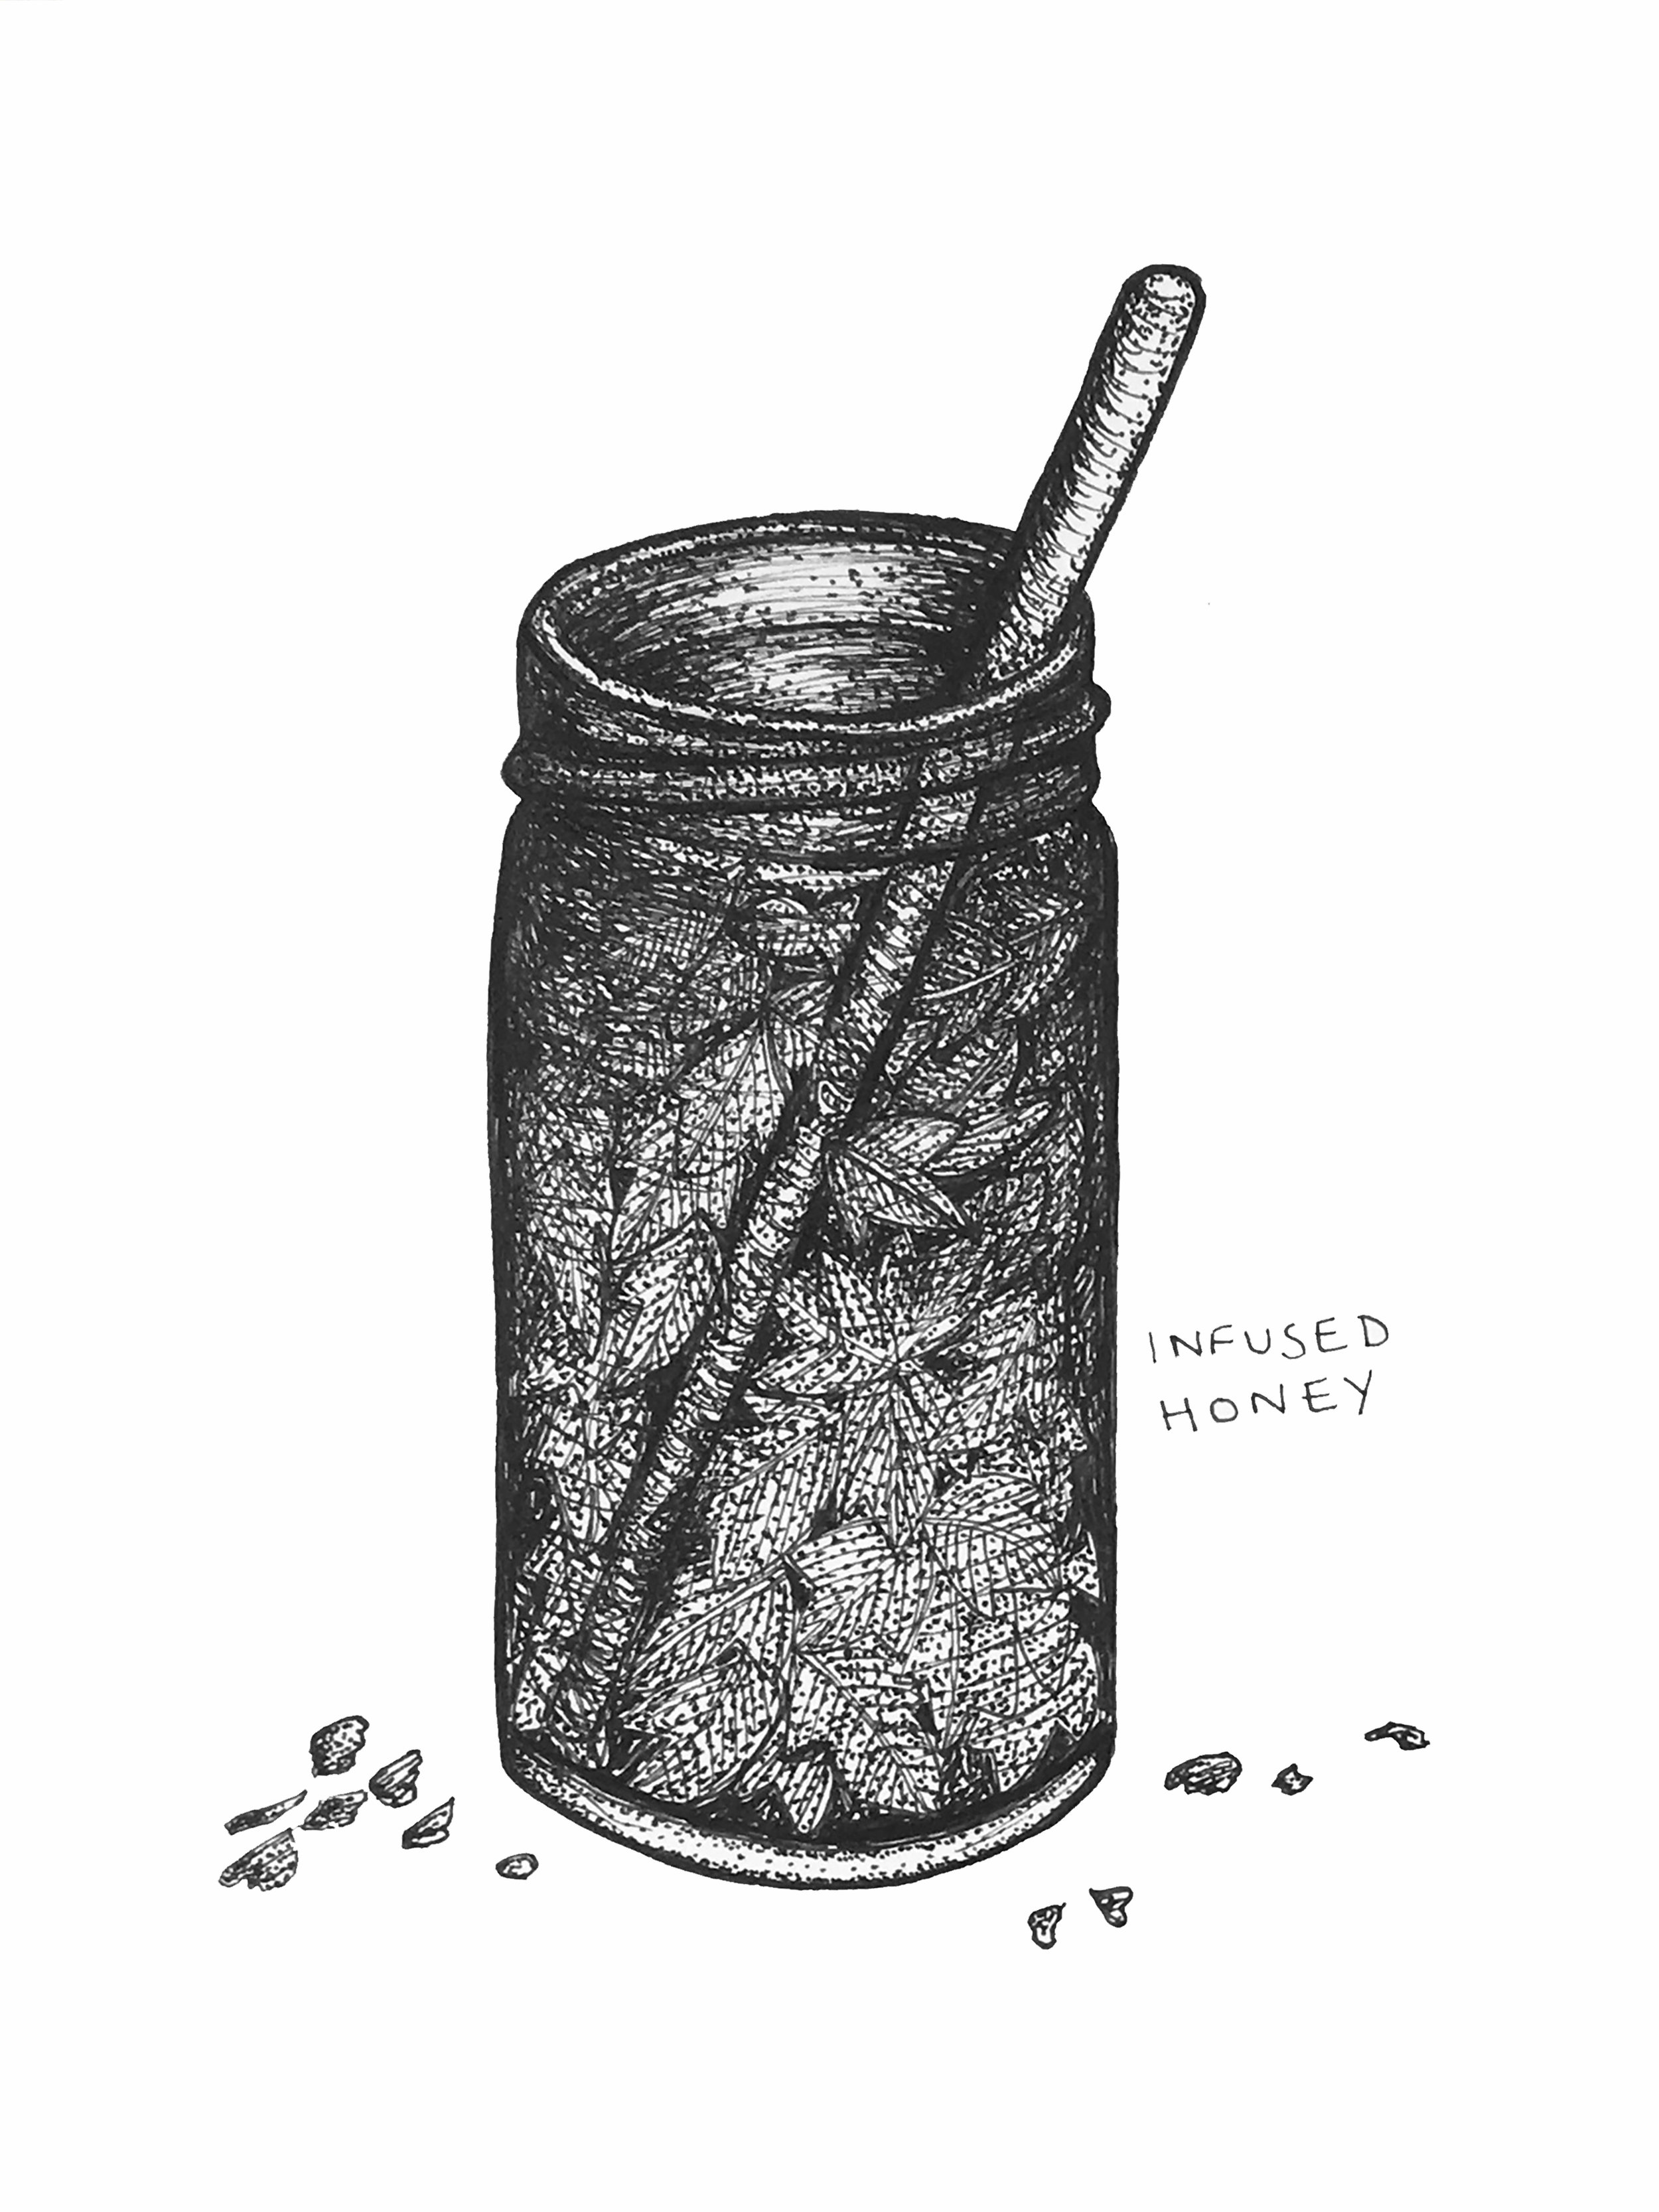 An illustration of herb infused honey, which I made for a project I am working on with Lynn.